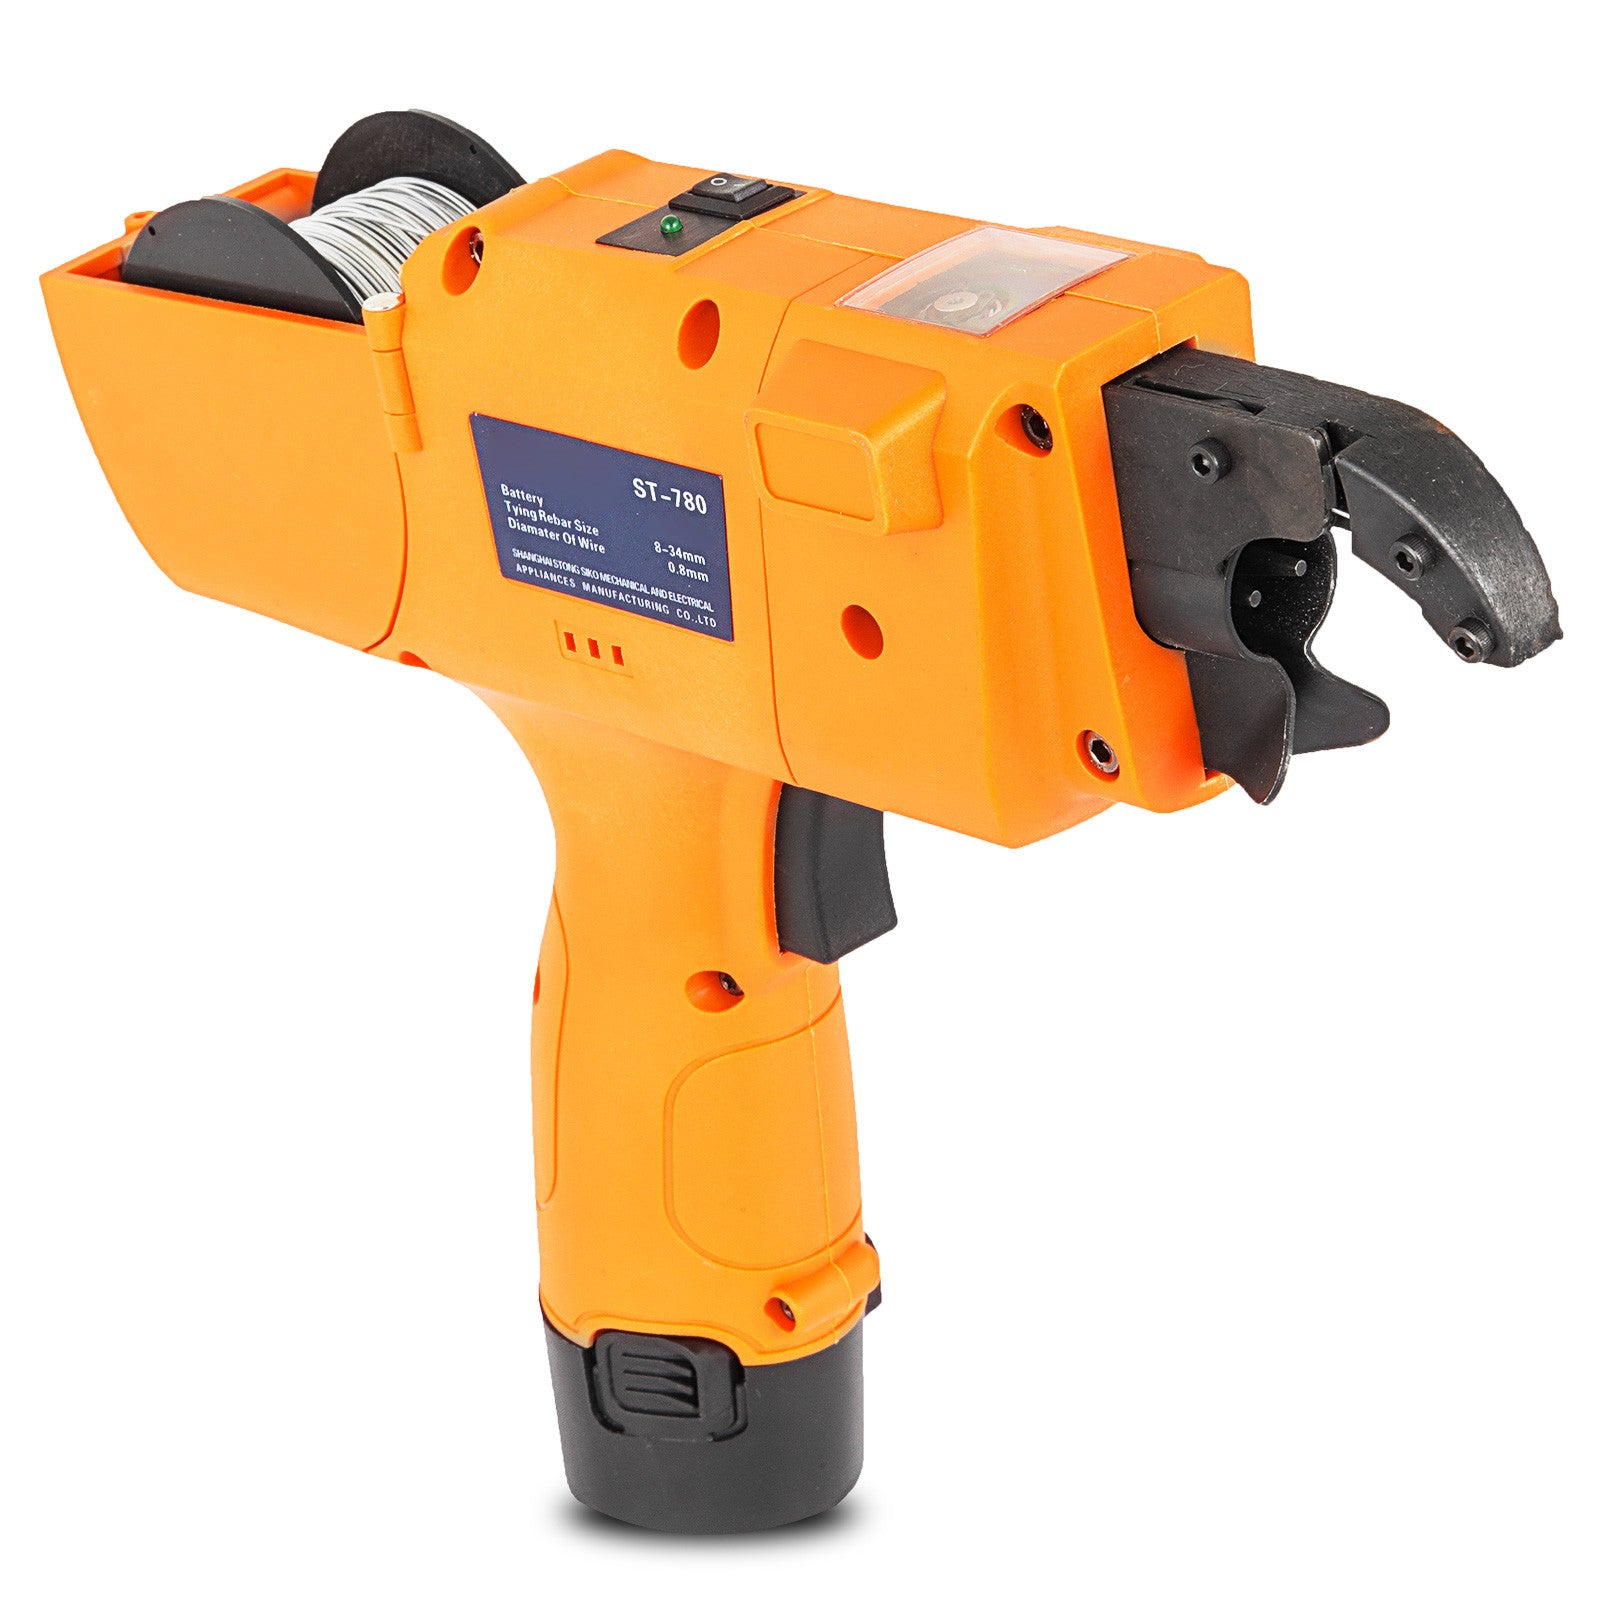 8-34mm Automatic Rebar Tier Handheld Tying Reinforcing Steel Strapping Machine